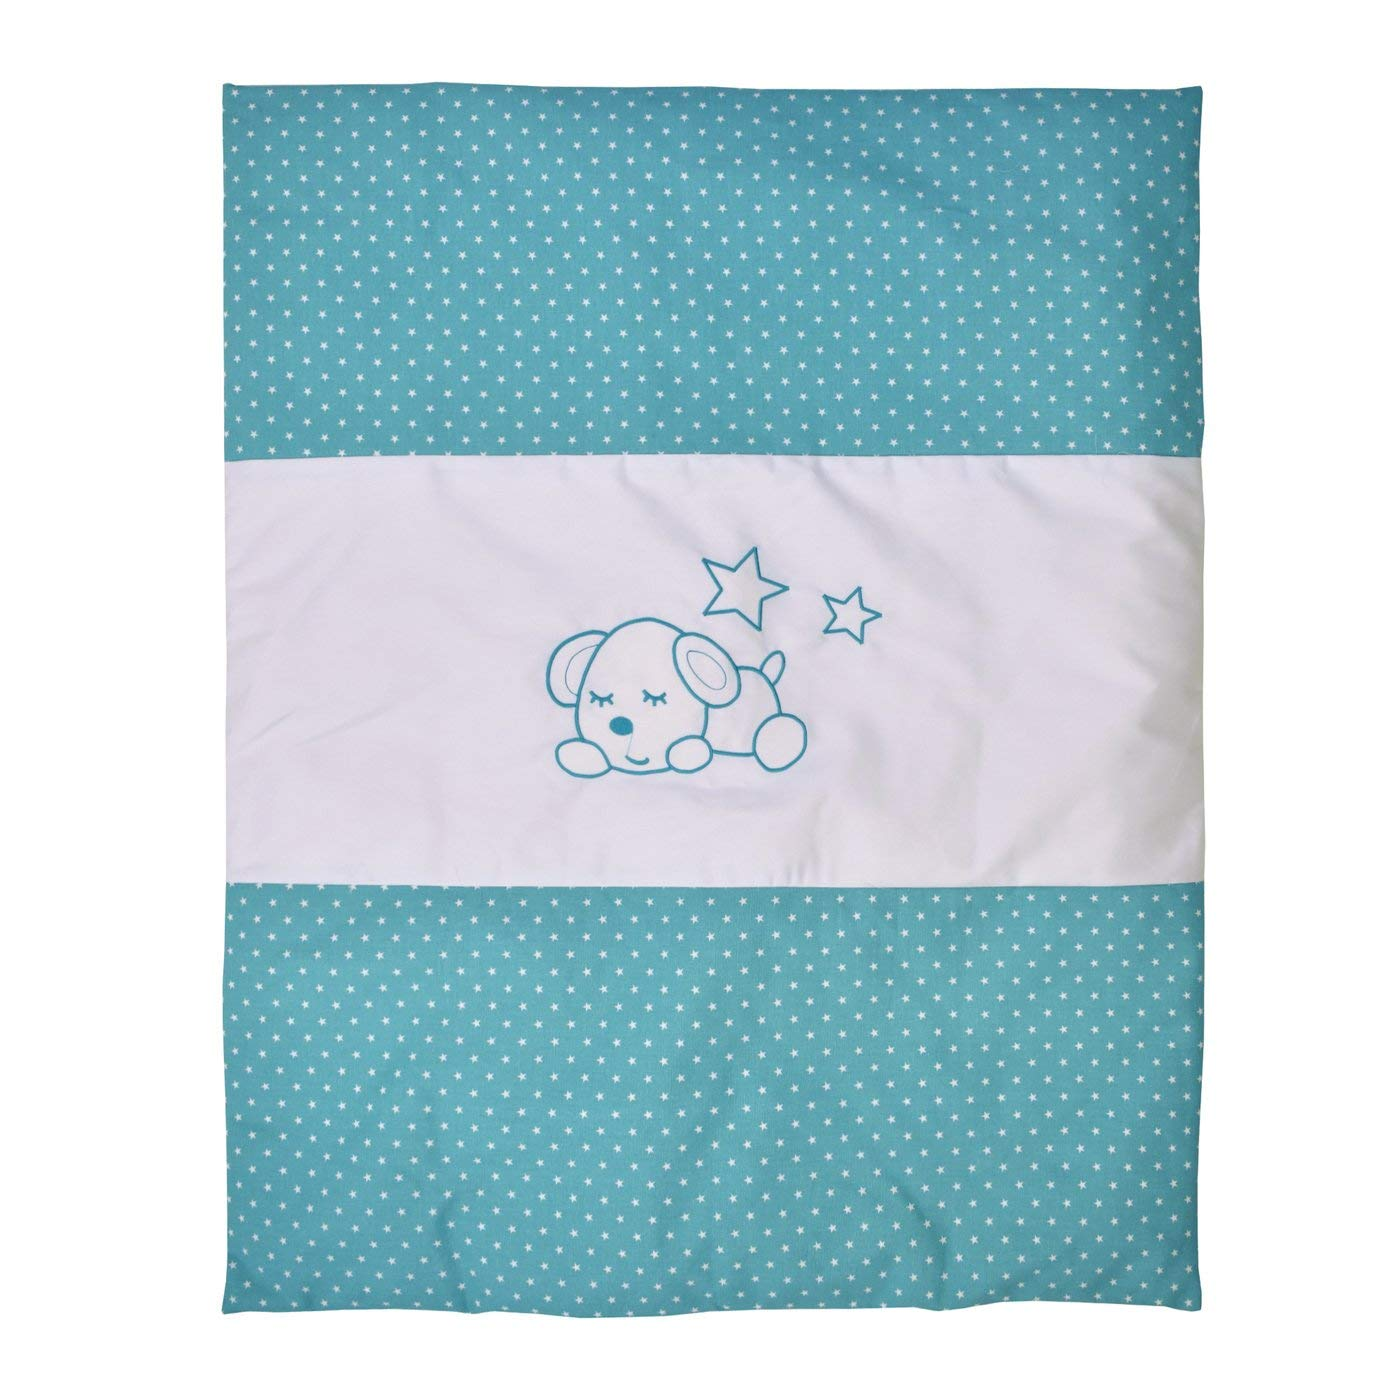 Bebelelo - 5 pieces bedding for baby - turquoise and white with a Sleeping Dog pattern - image 8 of 9